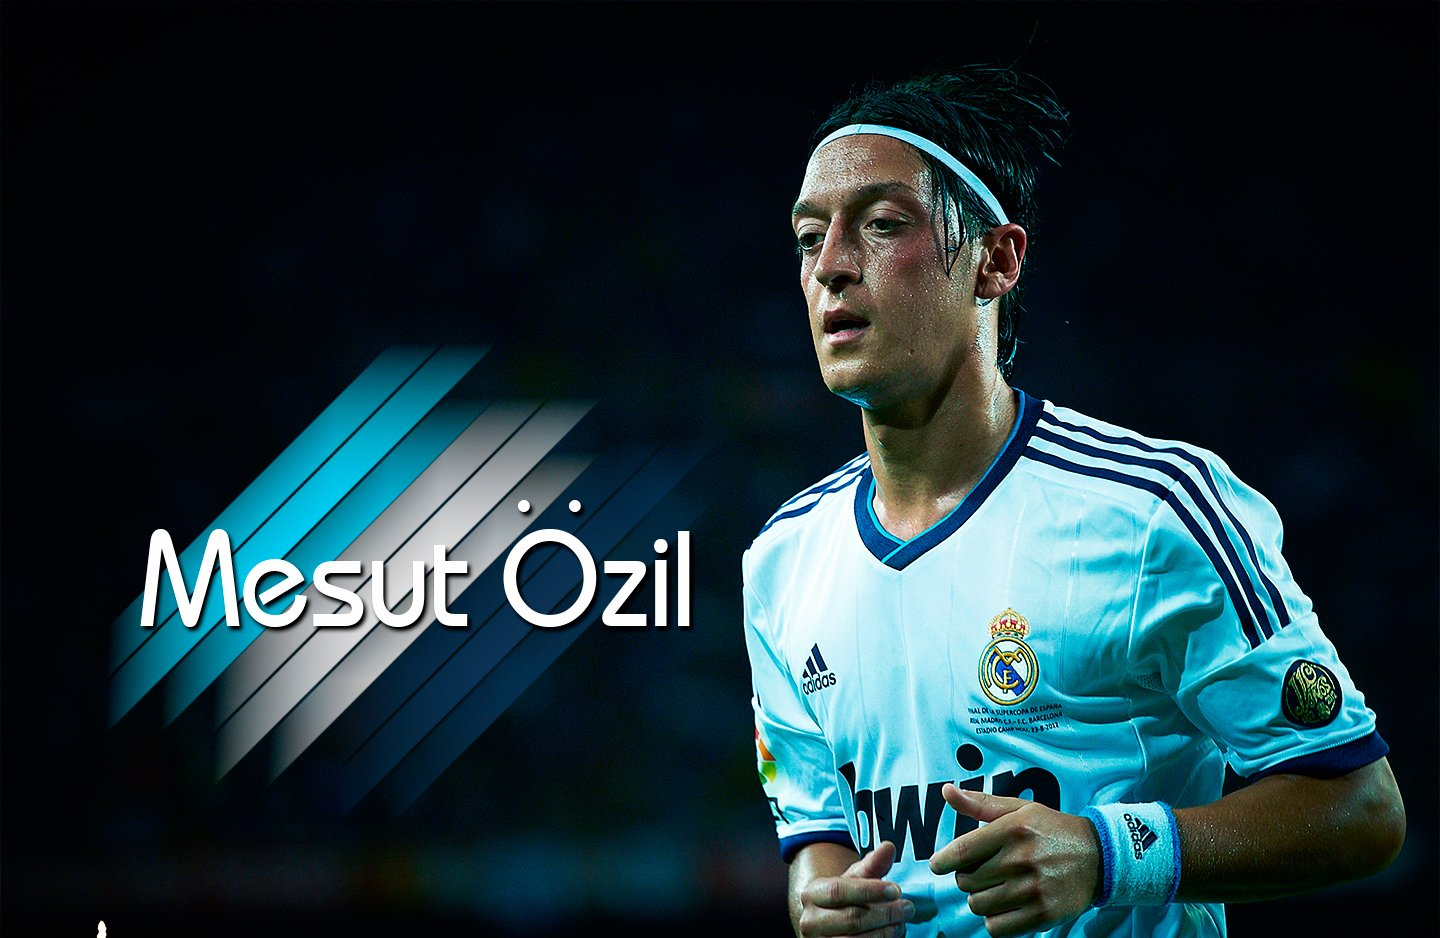 Mesut Ozil 2013 Wallpapers HD Keywords   Download Mesut Ozil 2013